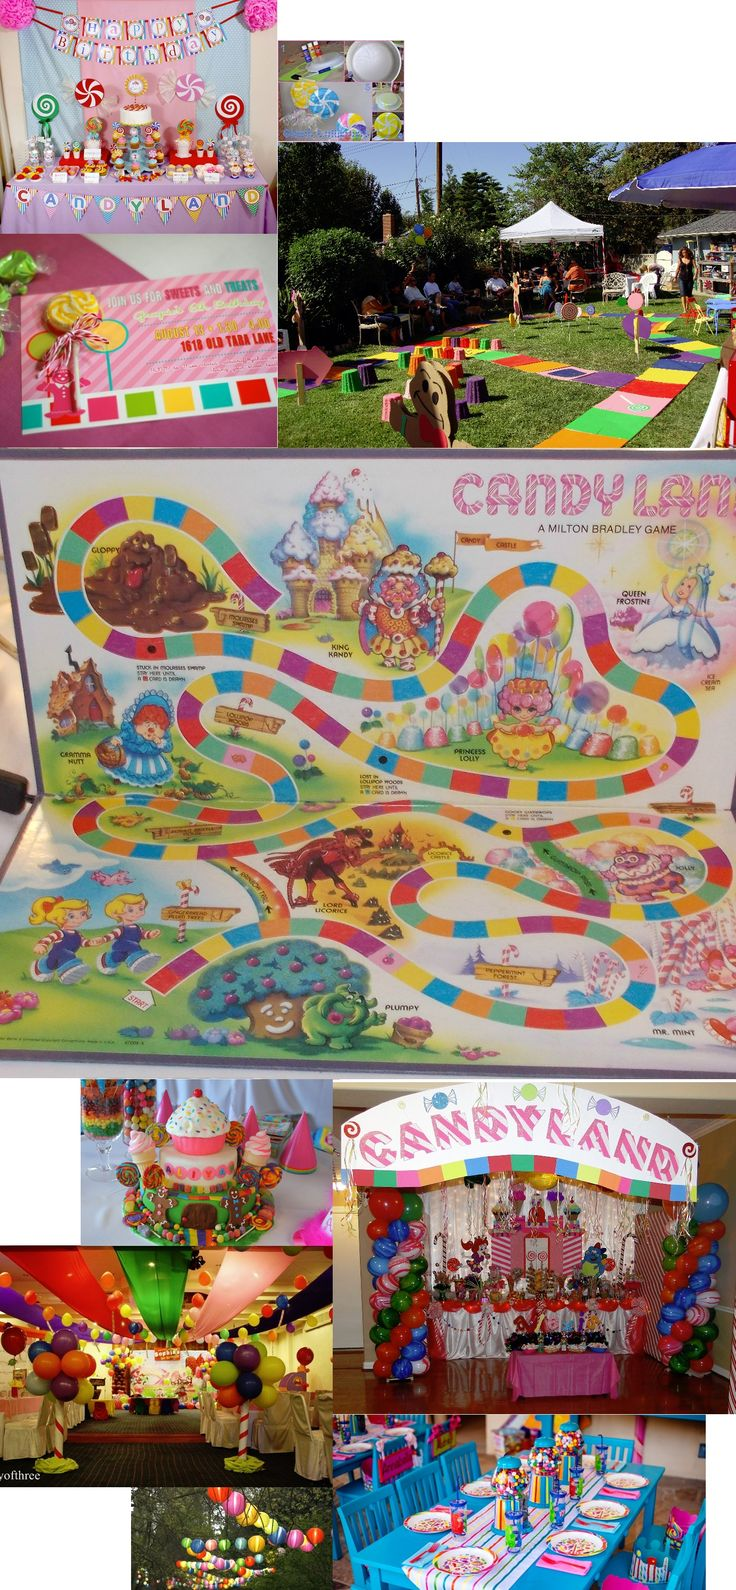 candyland party ideas for a child's birthday